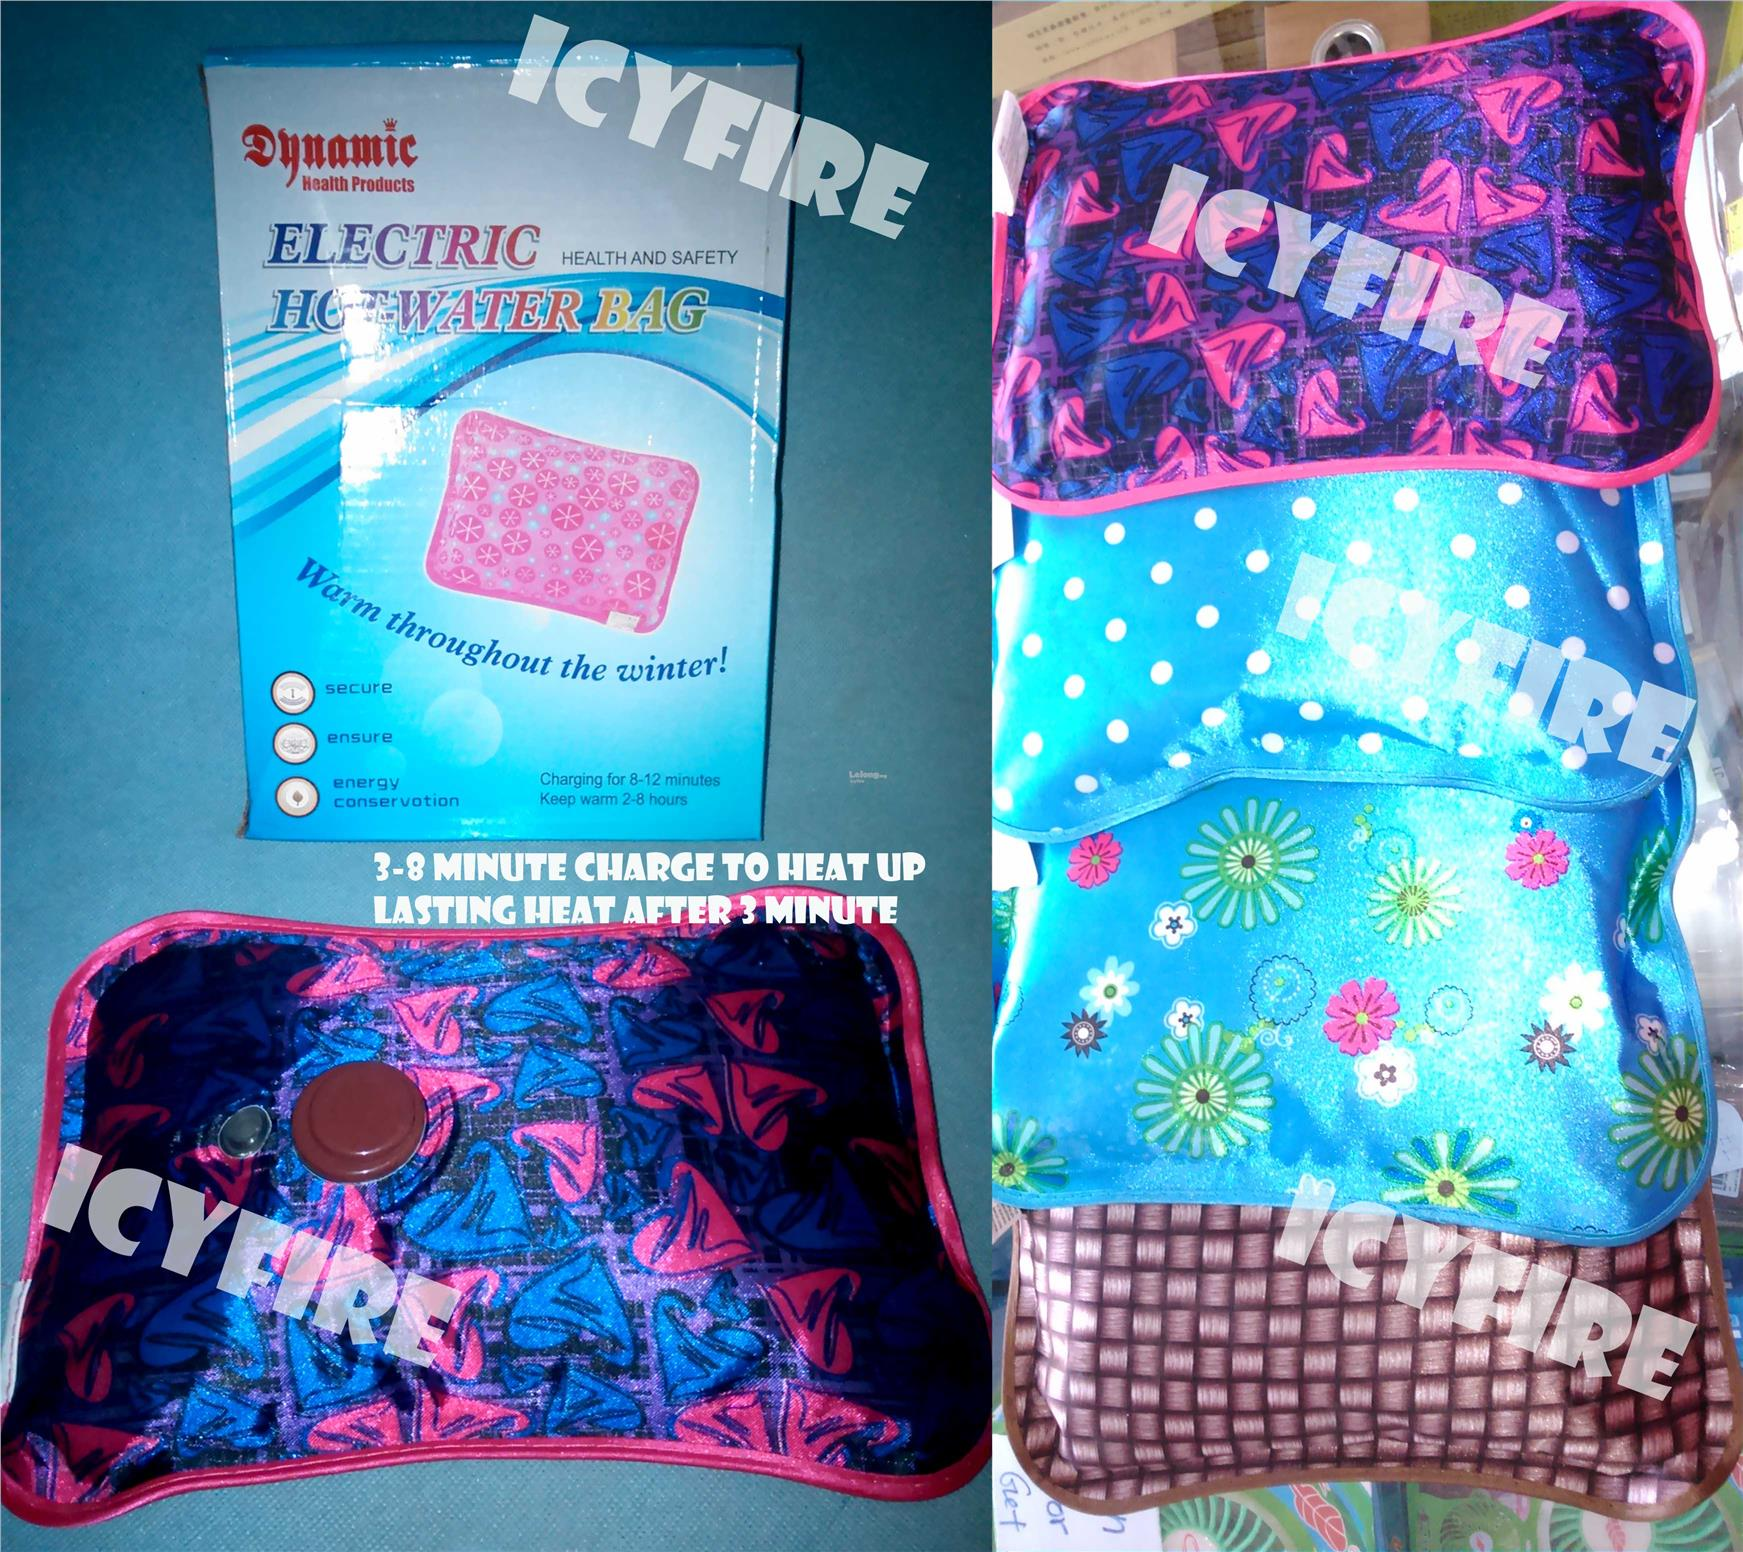 HOT Water bag